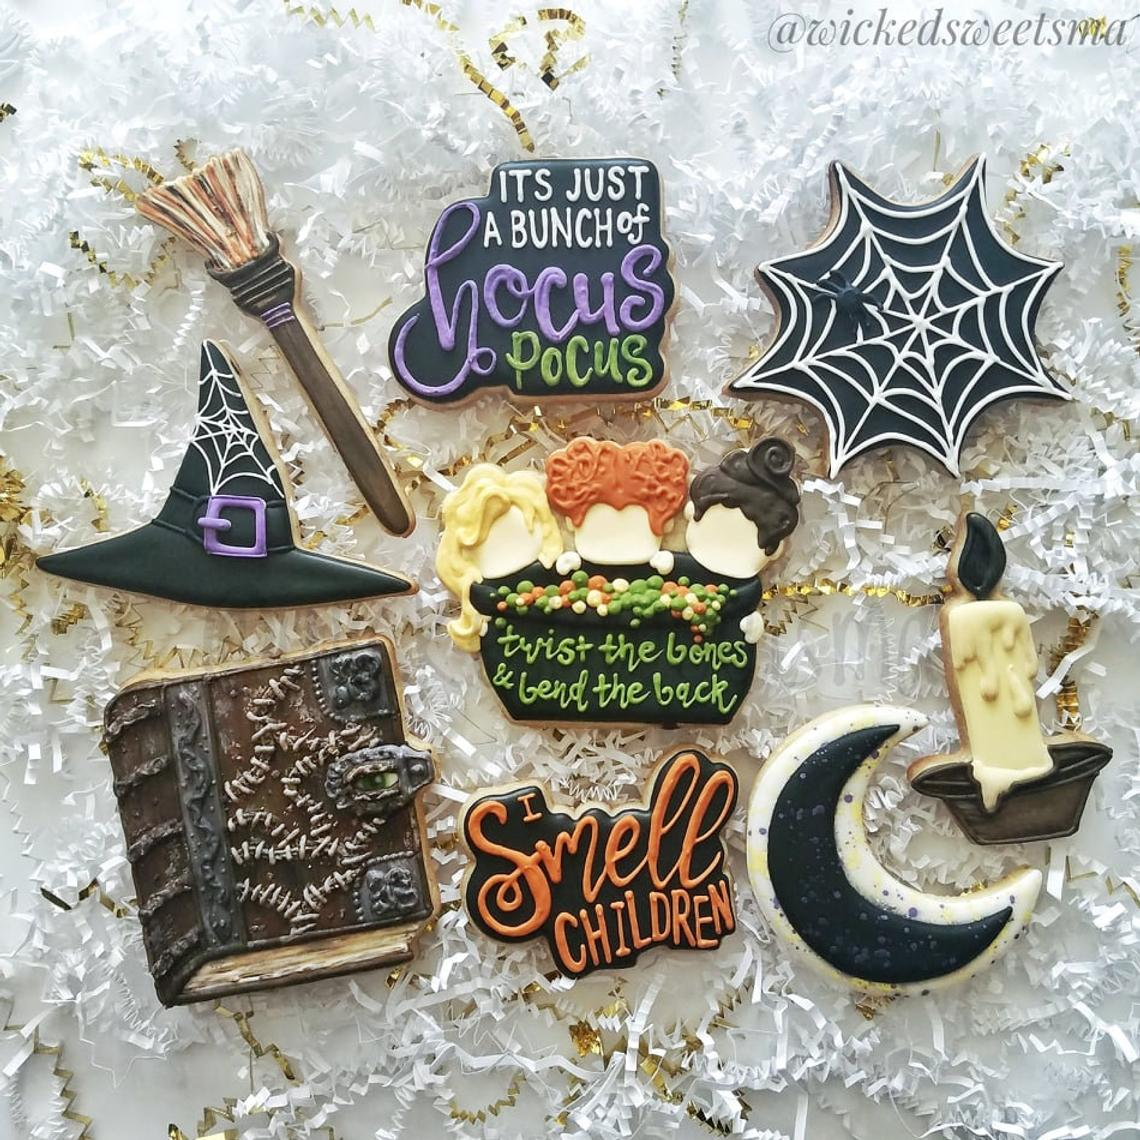 """I Smell Children"" Hocus Pocus Halloween Cookies by Wicked Sweets Ma on TheIcedSugarCookie.com"